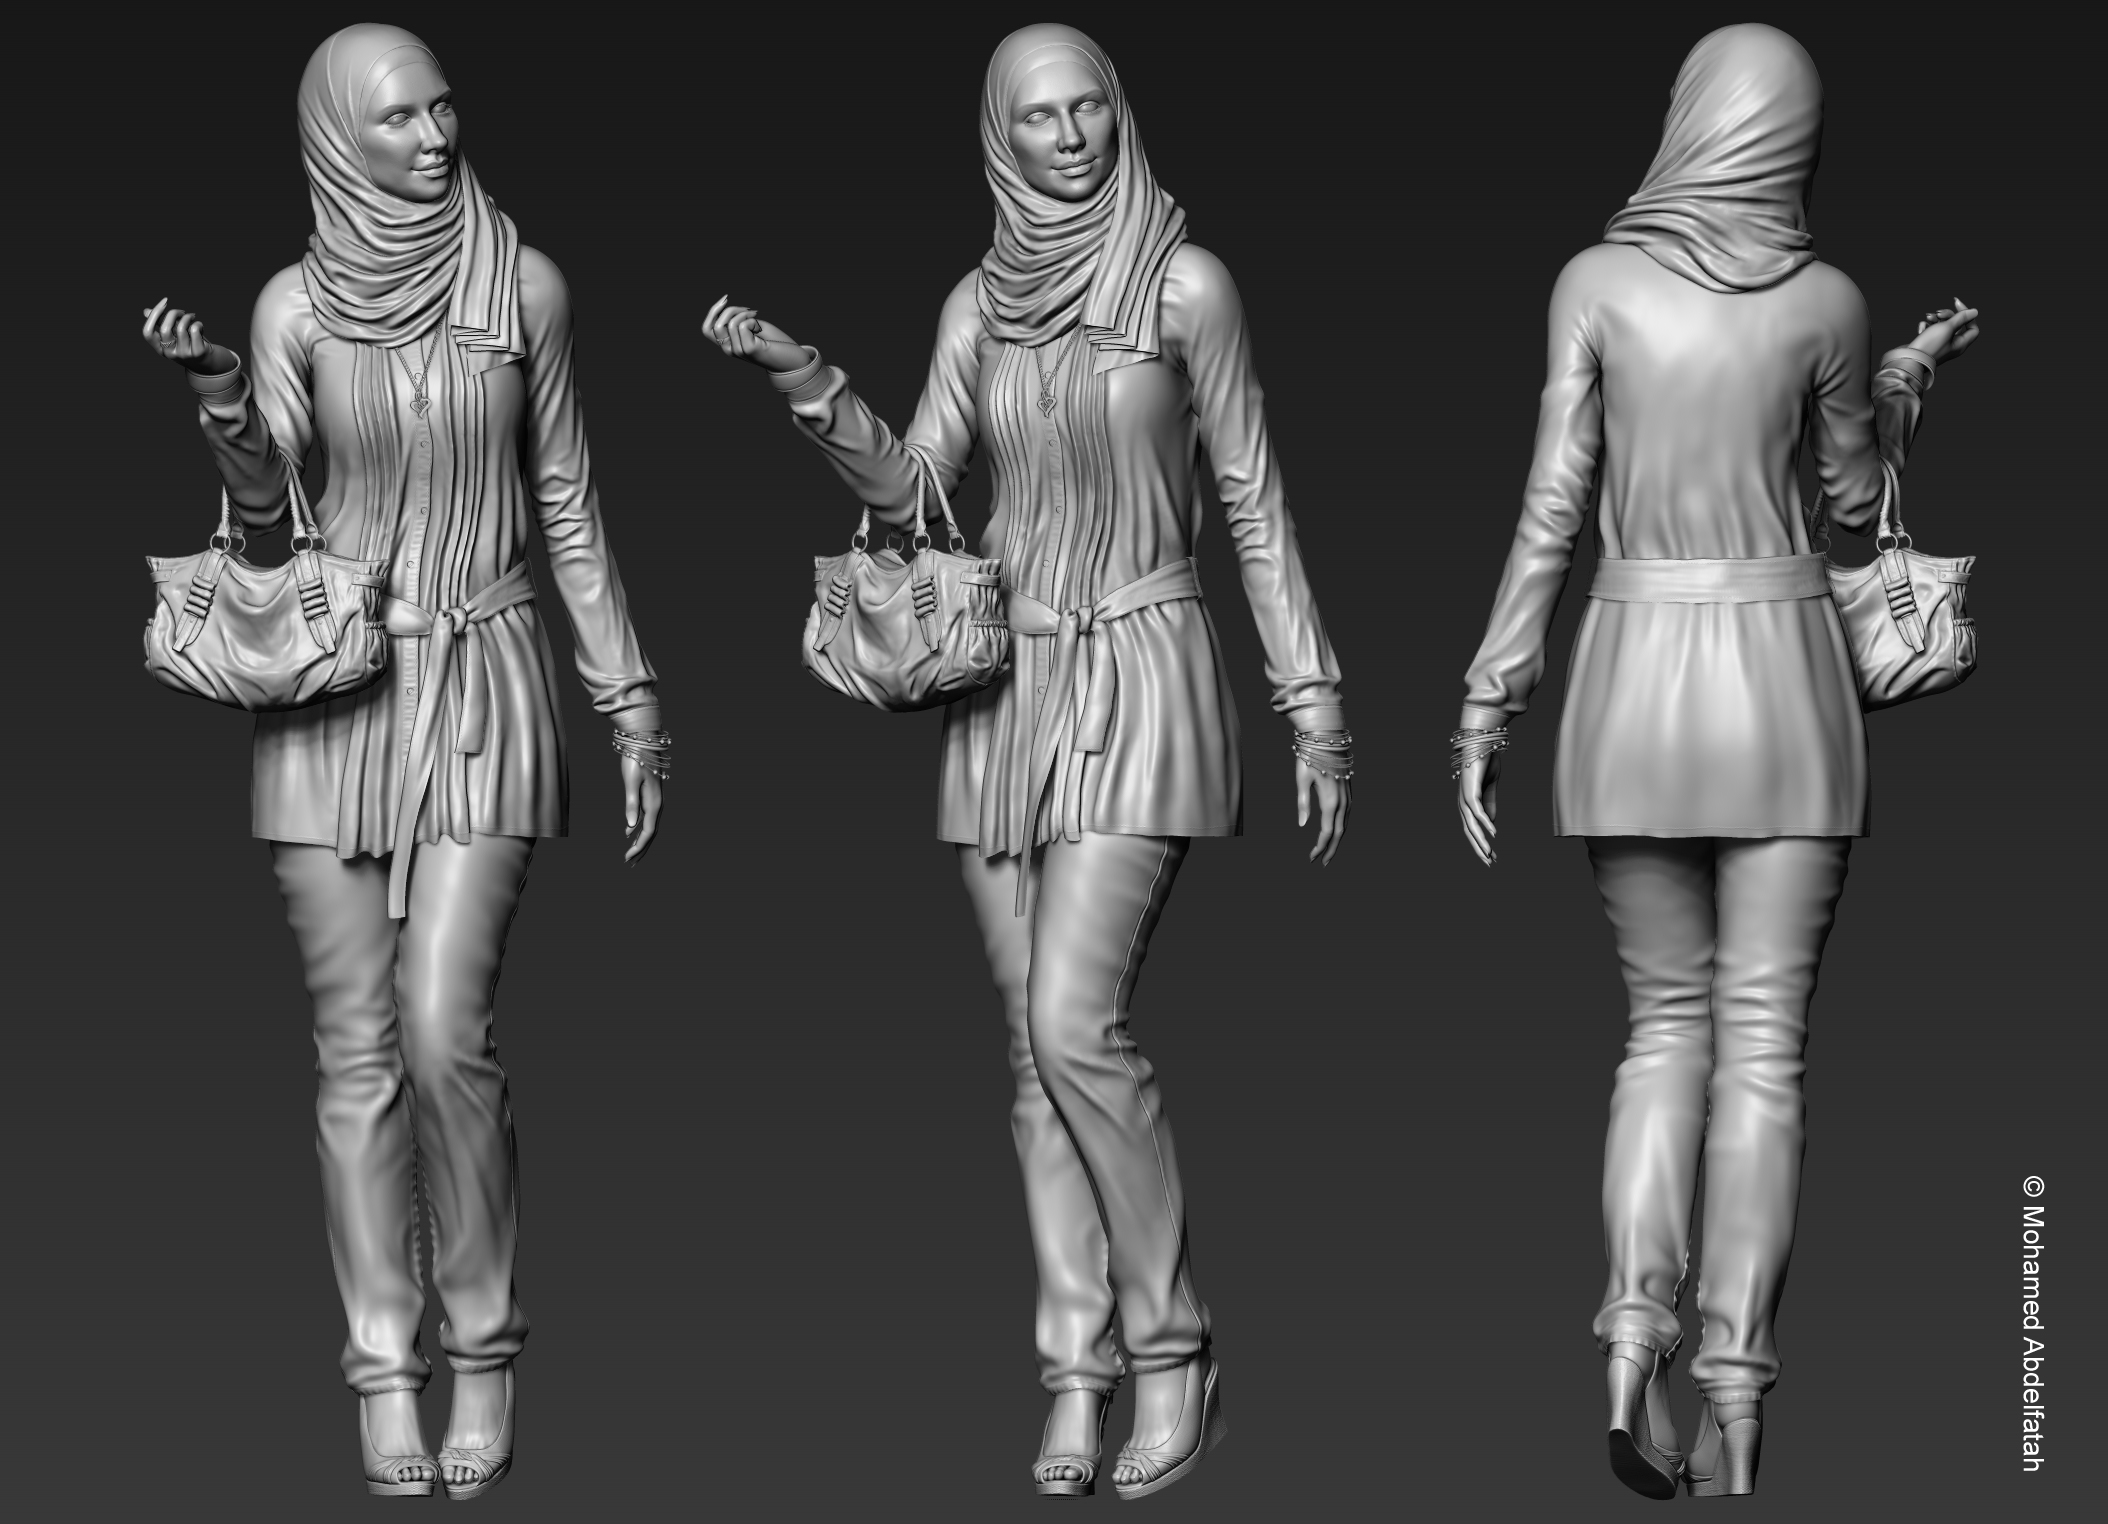 Character Design Artist Interviews : Fairouz sculpt by mabdelfatah on deviantart